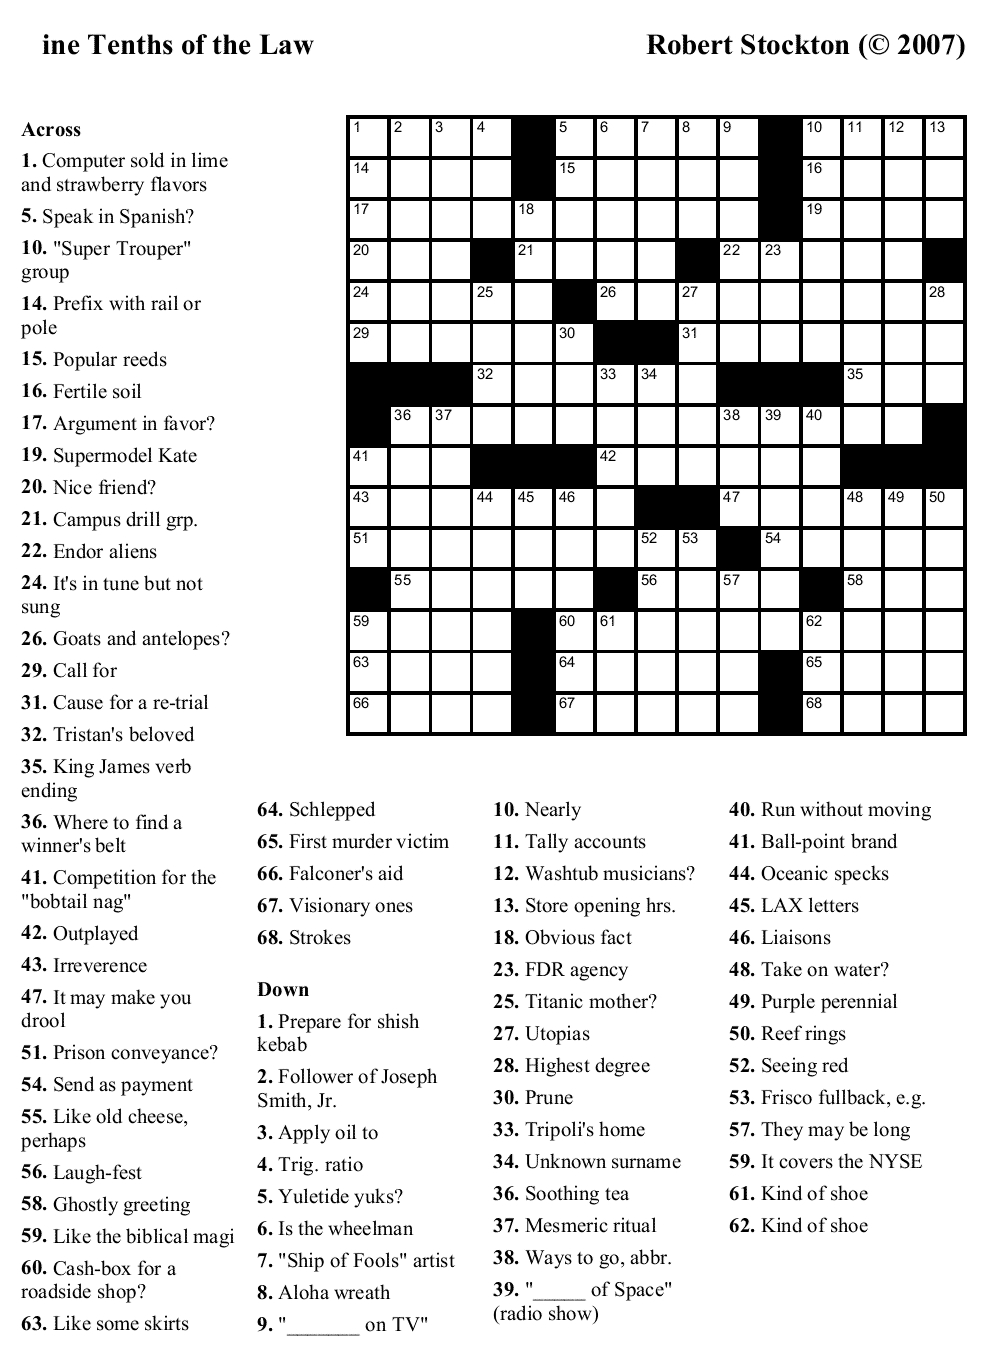 Crossword Puzzles Printable - Yahoo Image Search Results | Crossword - Crossword Puzzle Games Printable